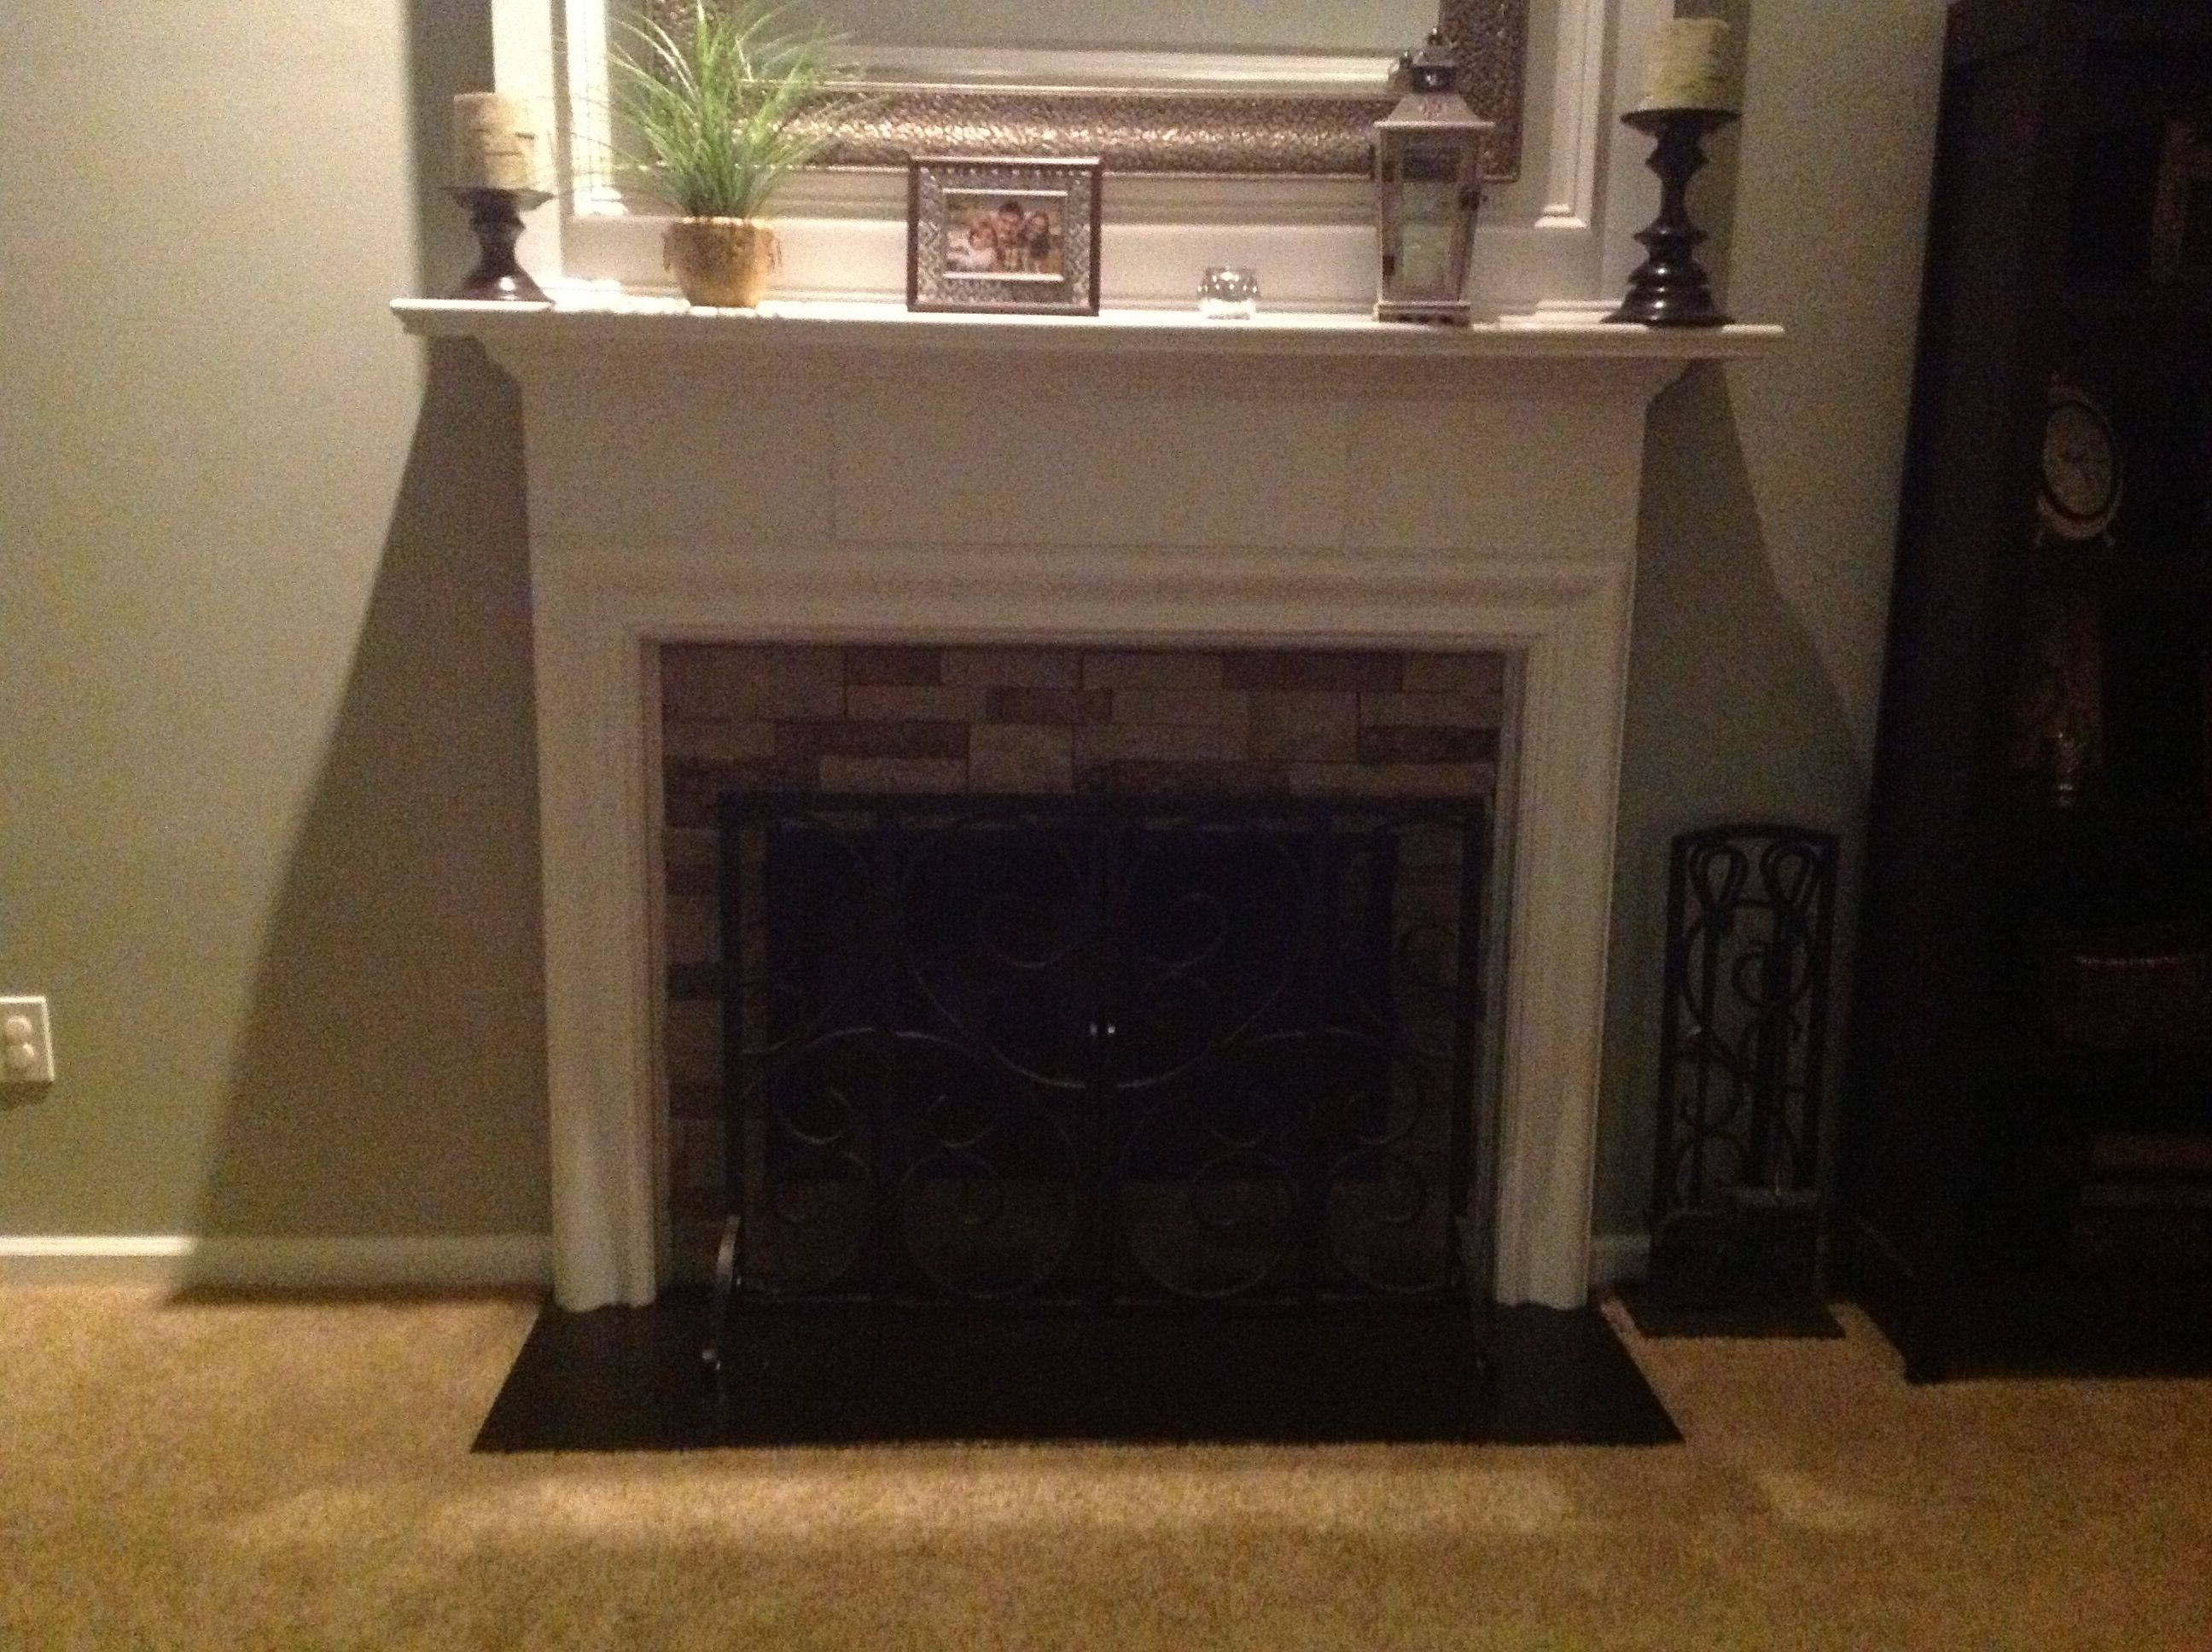 Home Depot Faux Stone Faux Stone Fireplace Border Called Airstone At Home Depot